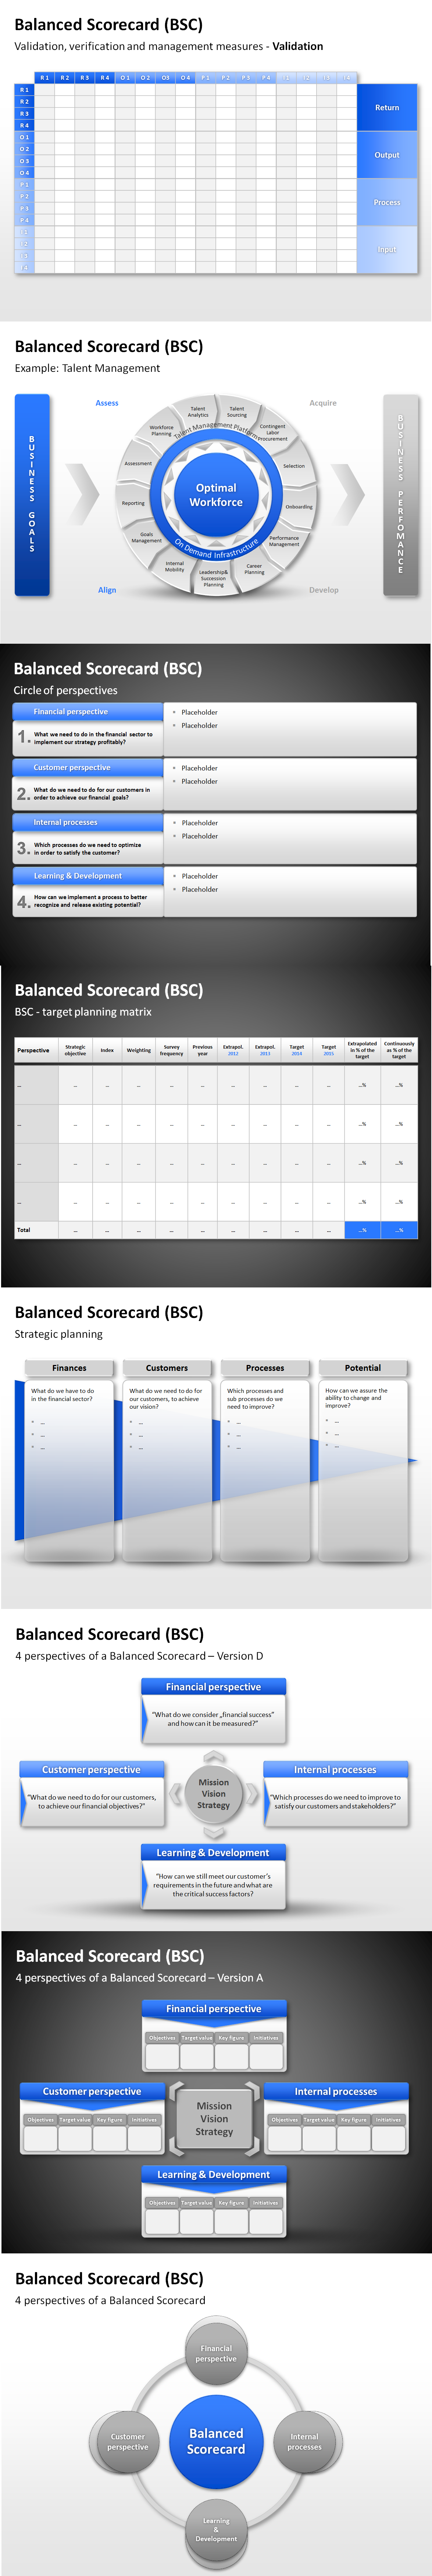 Balanced Scorecard Templates For The Depiction And Analysis Of